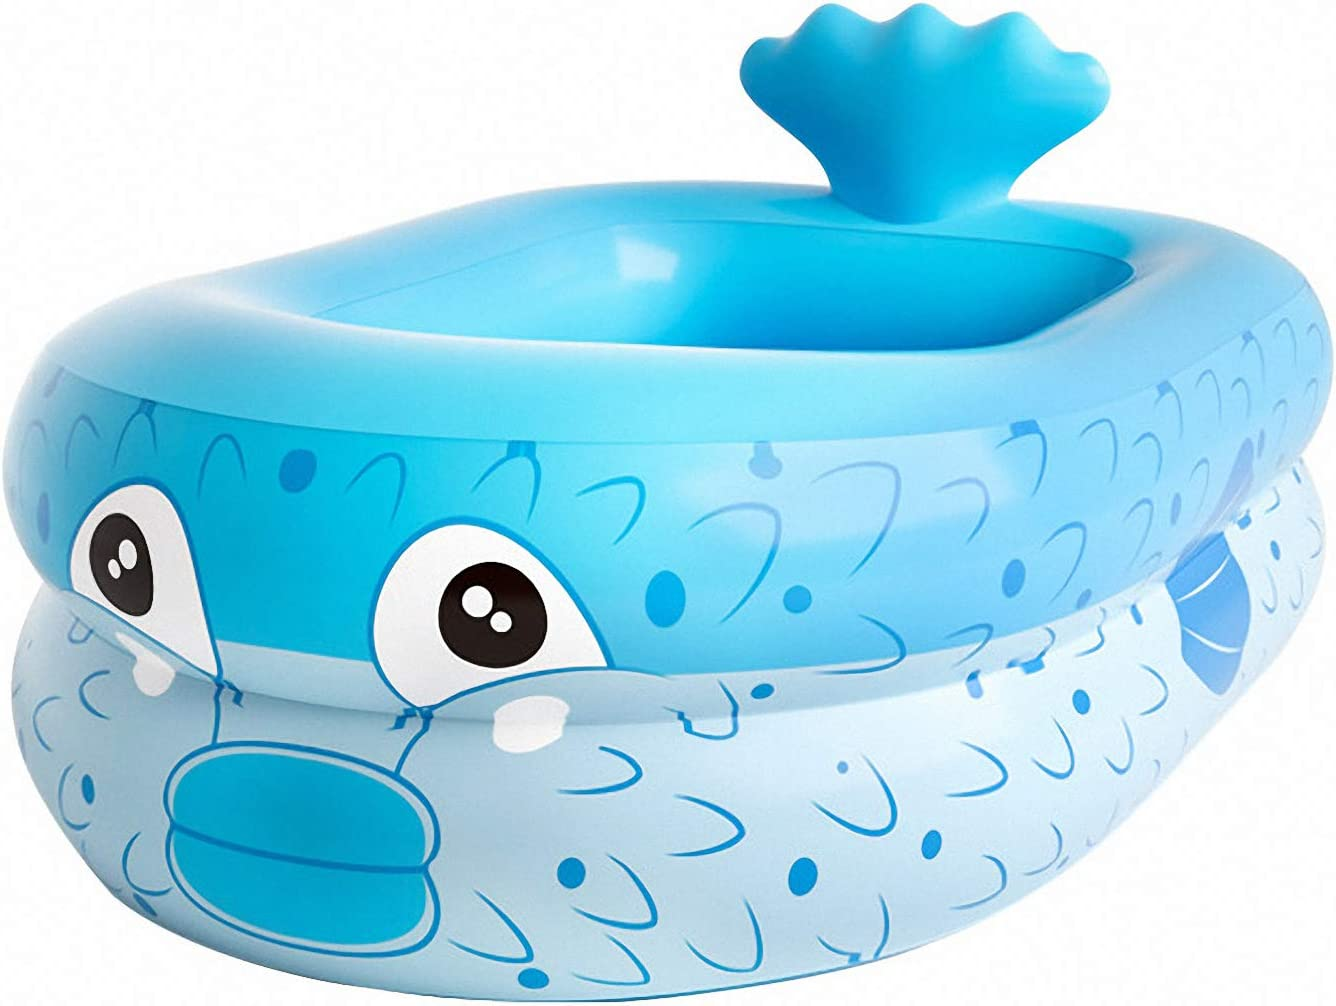 GYAM Children's Inflatable Swimming Environmentally Friend Superior Max 77% OFF Pool